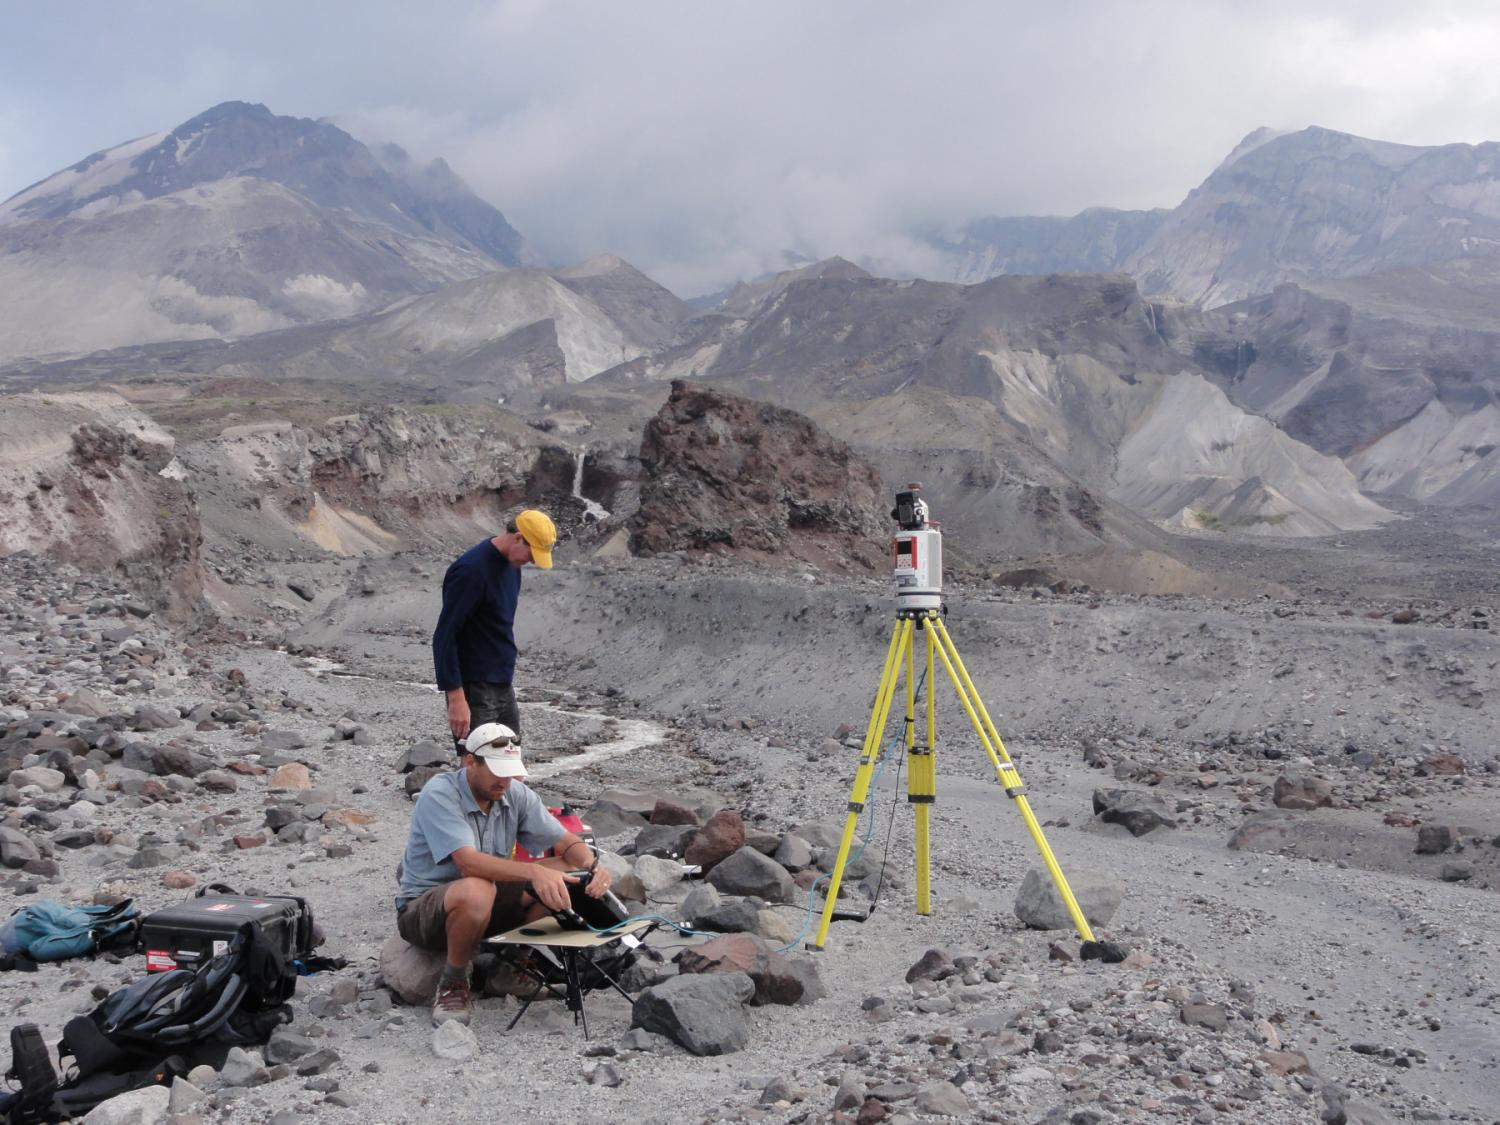 Faculty member John Pitlick and UNAVCO engineer Jim Normadeau using ground-based LiDAR to scan the topography of the North Fork Toutle River near Mount St. Helens, WA. August, 2010.  Photo: Chuck Meertens (UNAVCO, Boulder)